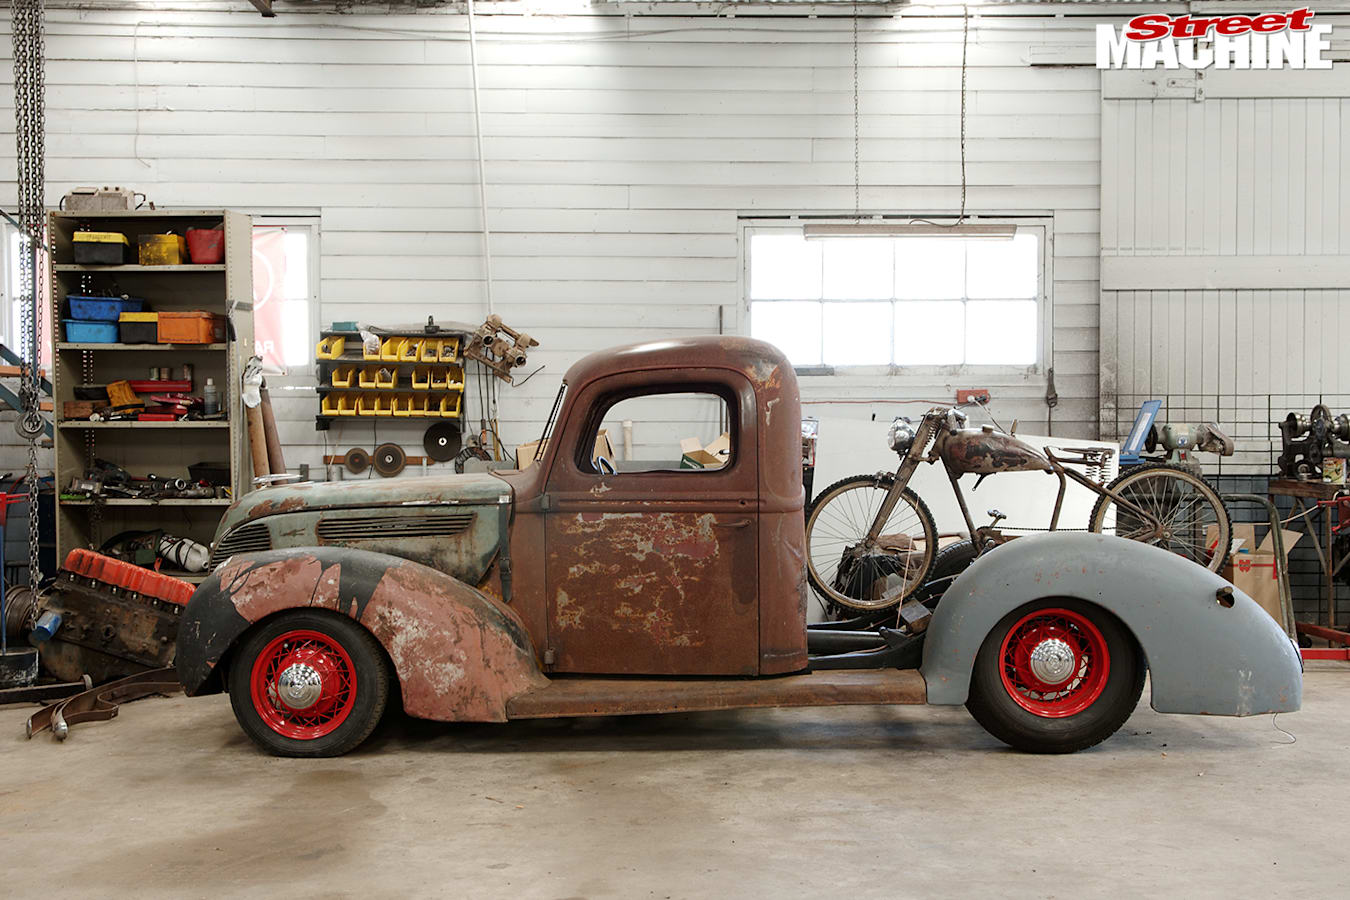 Street Machine Features Townsend Family Hot Rods